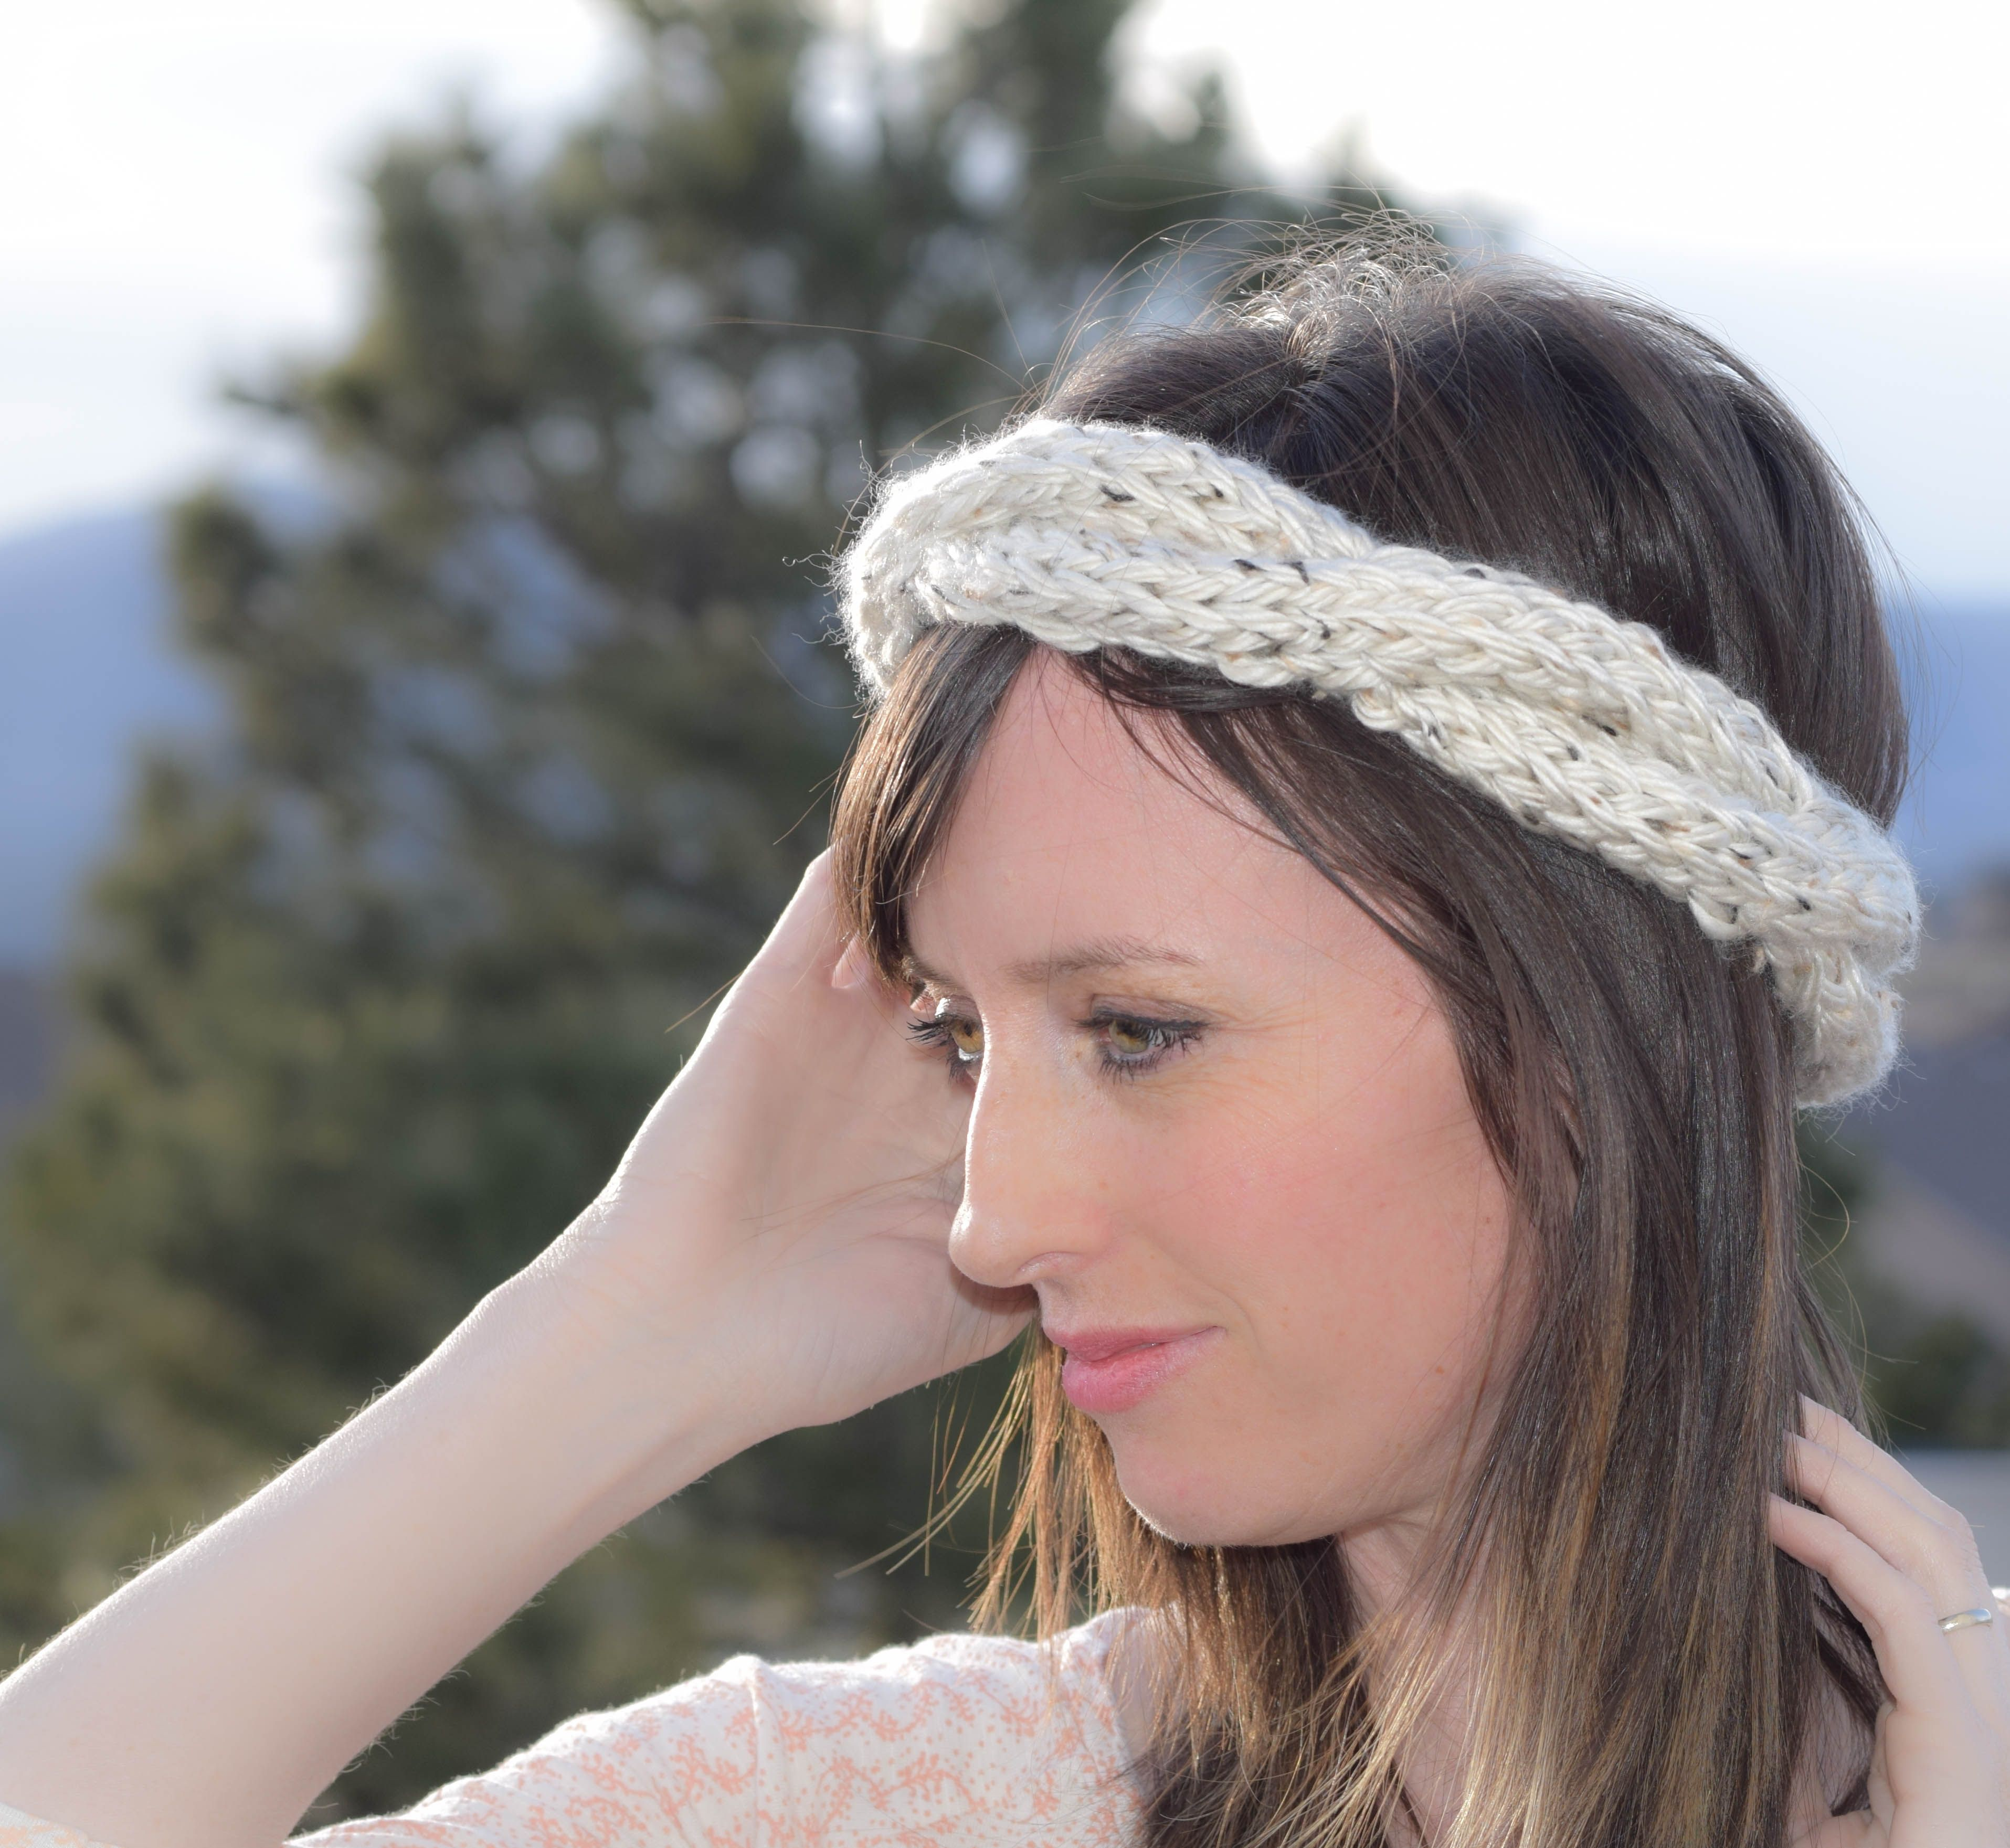 Easy free pattern from @mamainastitch - Knit Cabled \